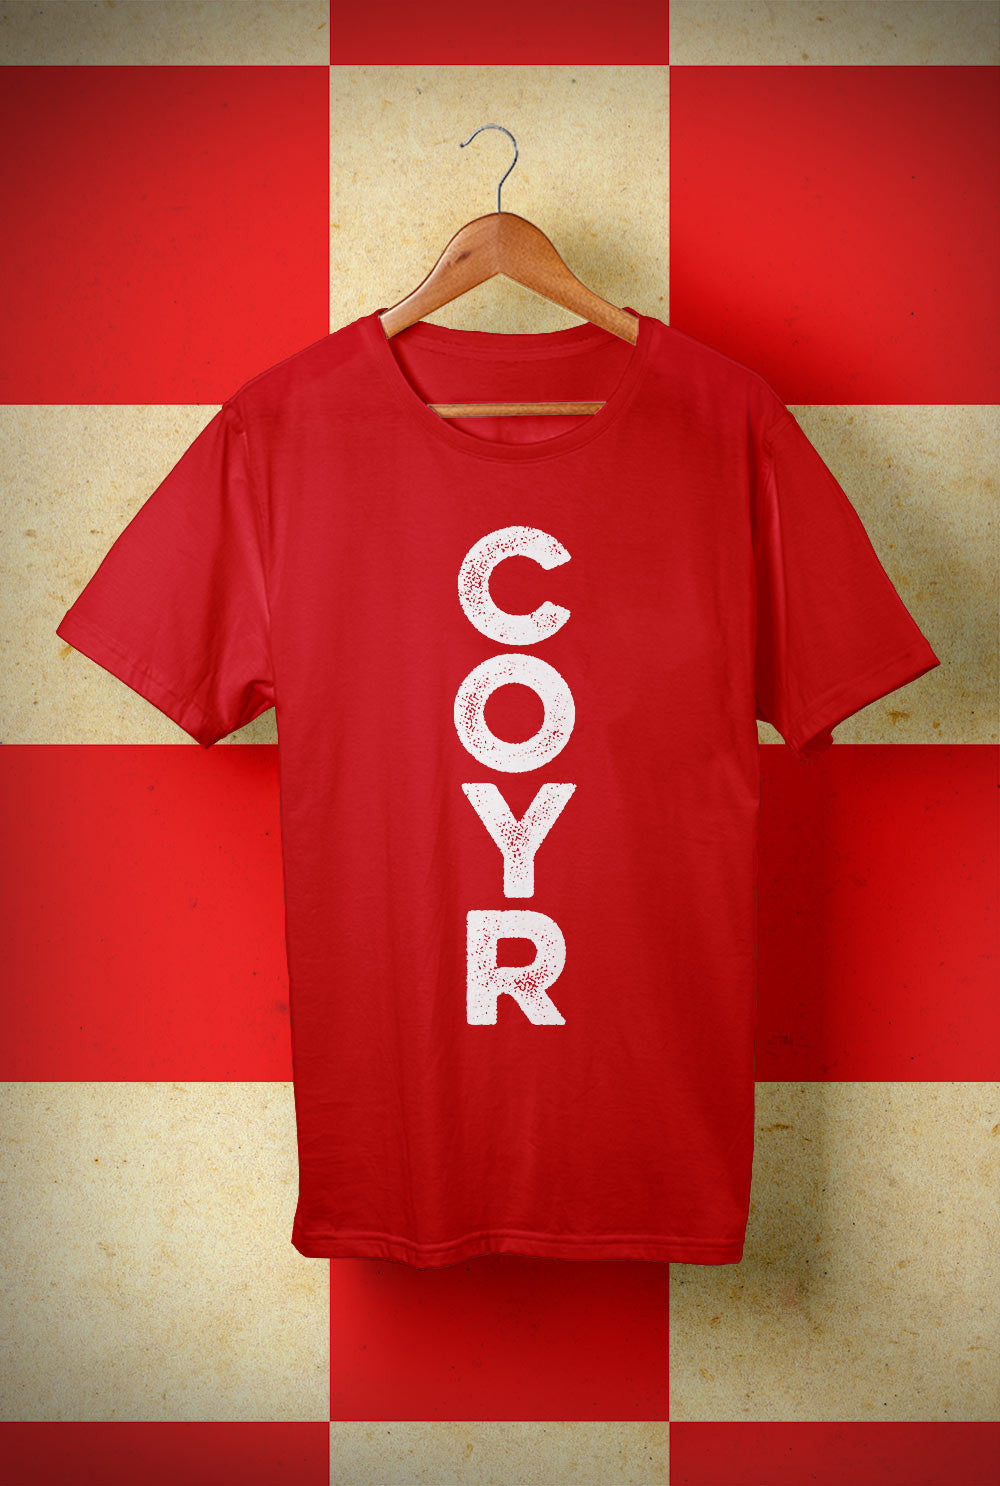 COYR Vertical<p> Unisex Gildan T Shirt In Red Or White Custom T Shirt by Lets Get Shirty Dot Com